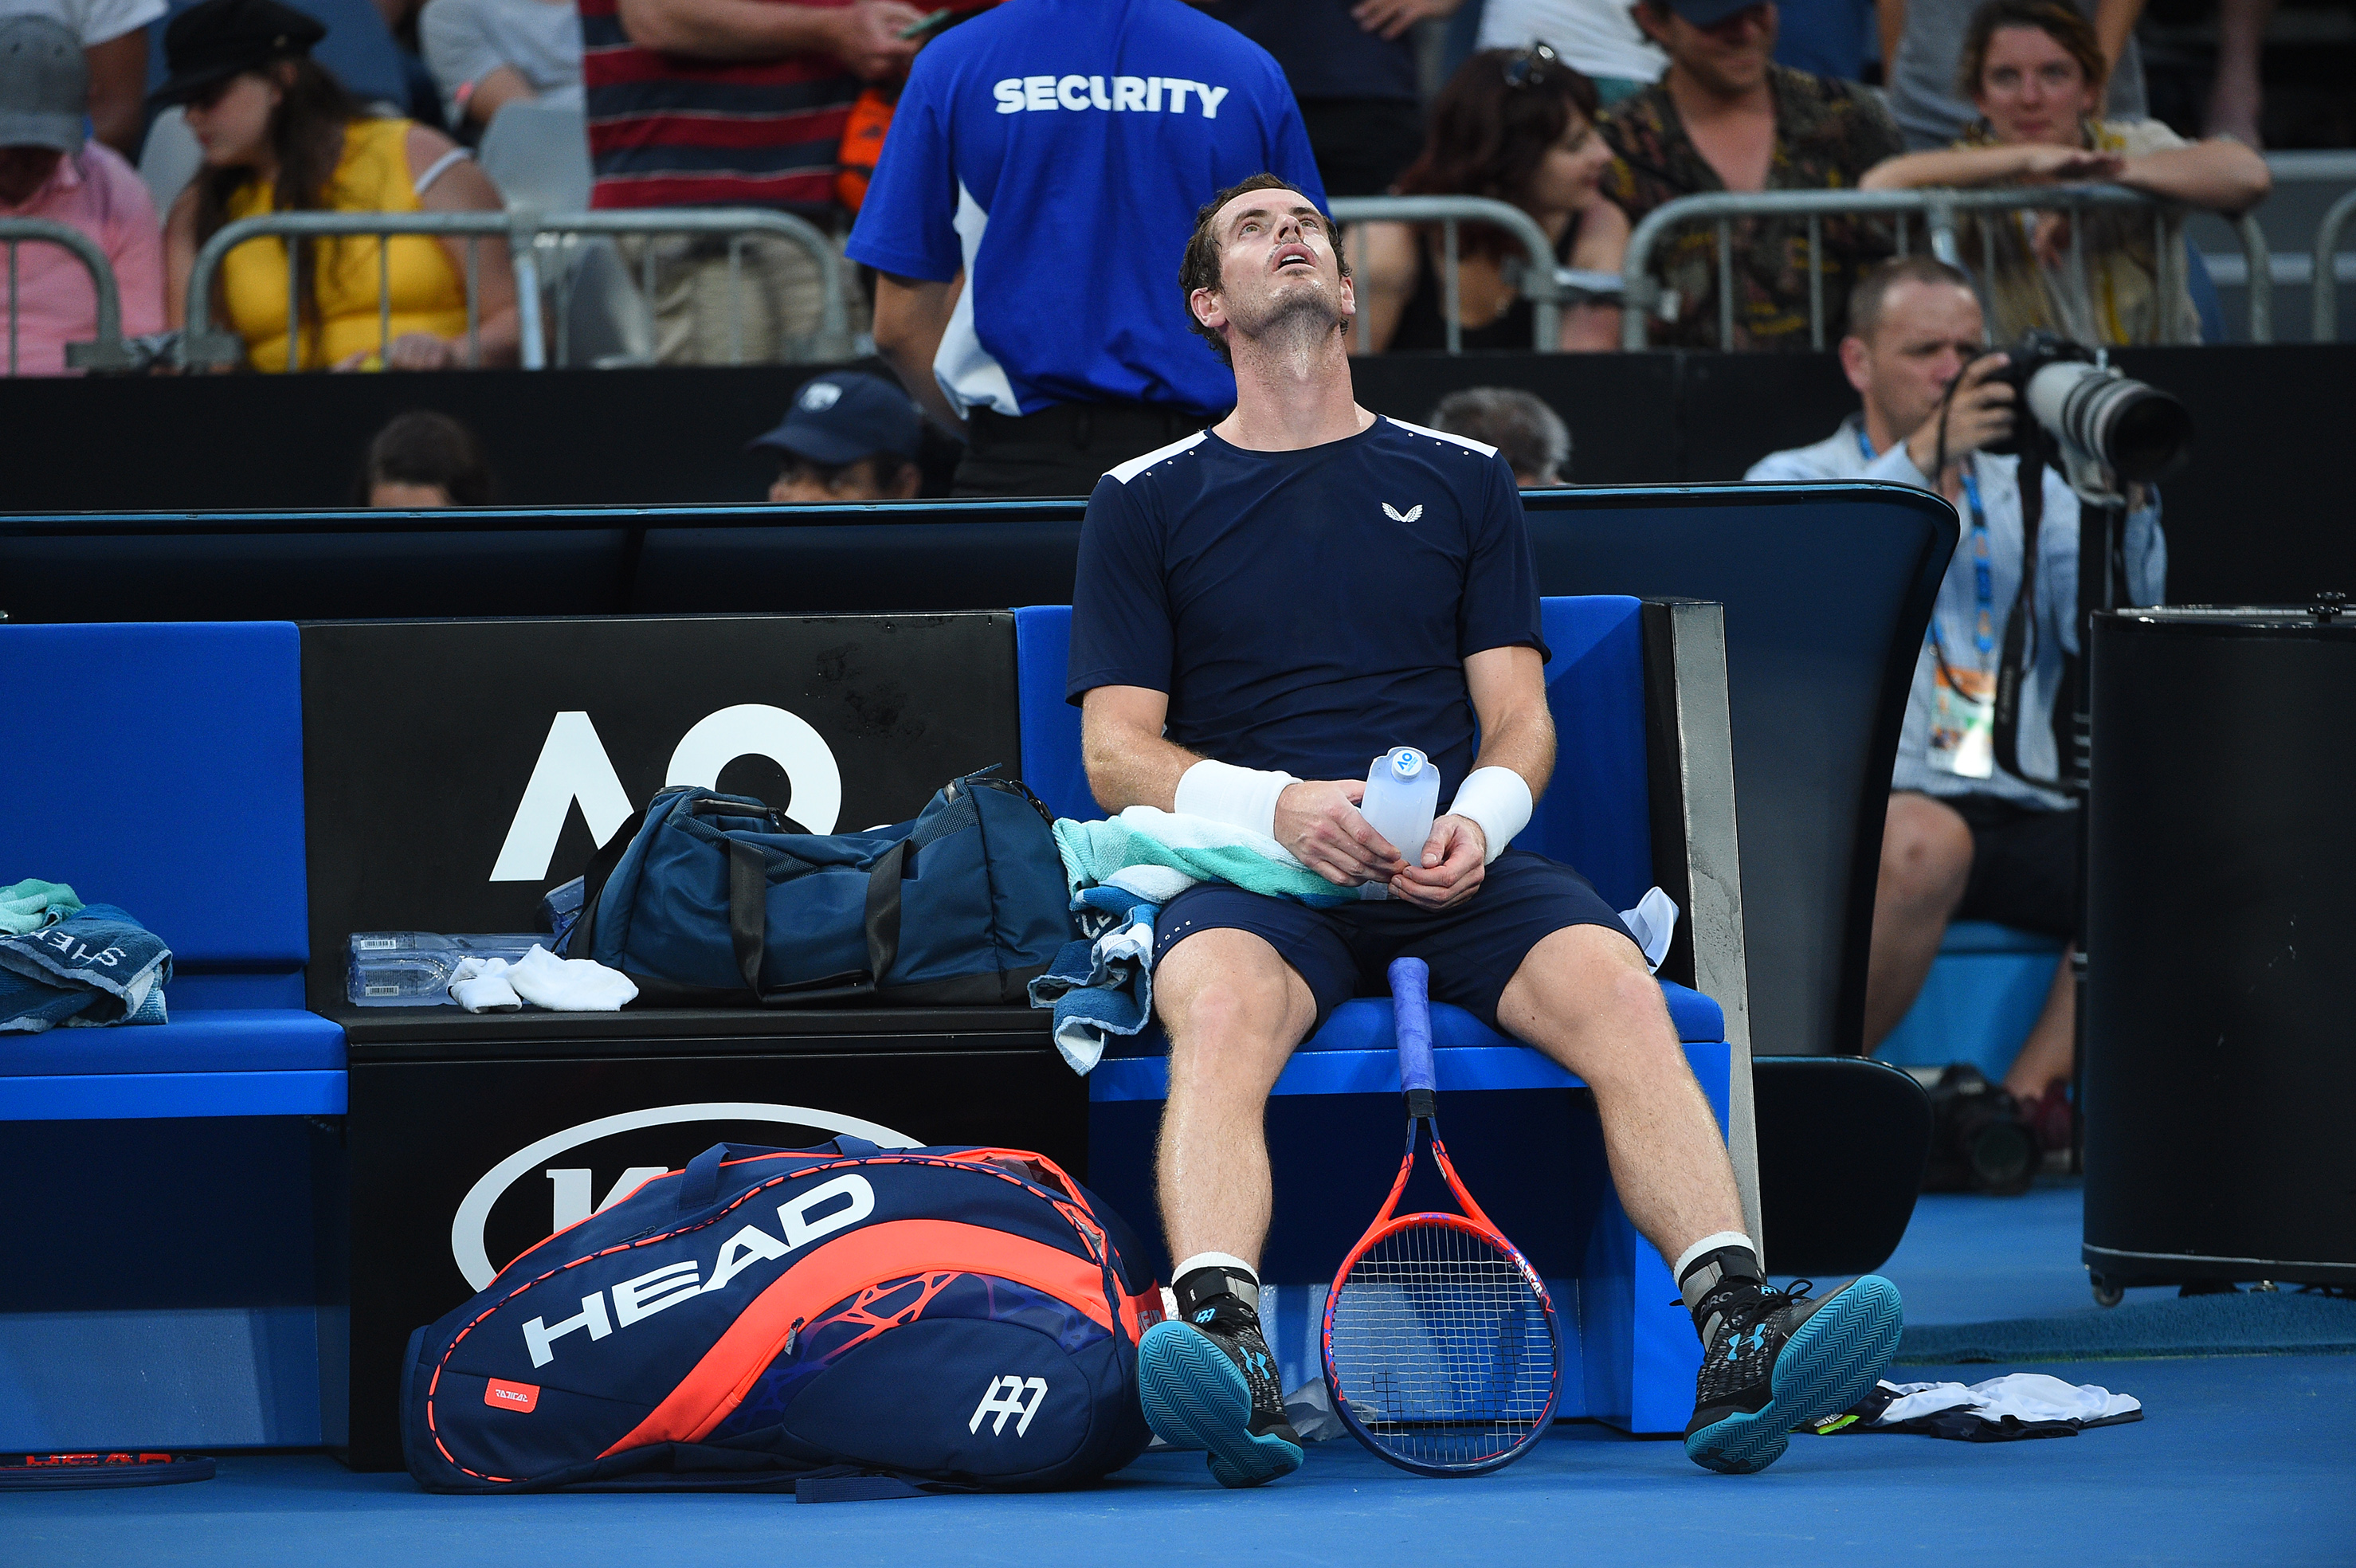 Andy Murray looking at the sky at the Australian Open 2019